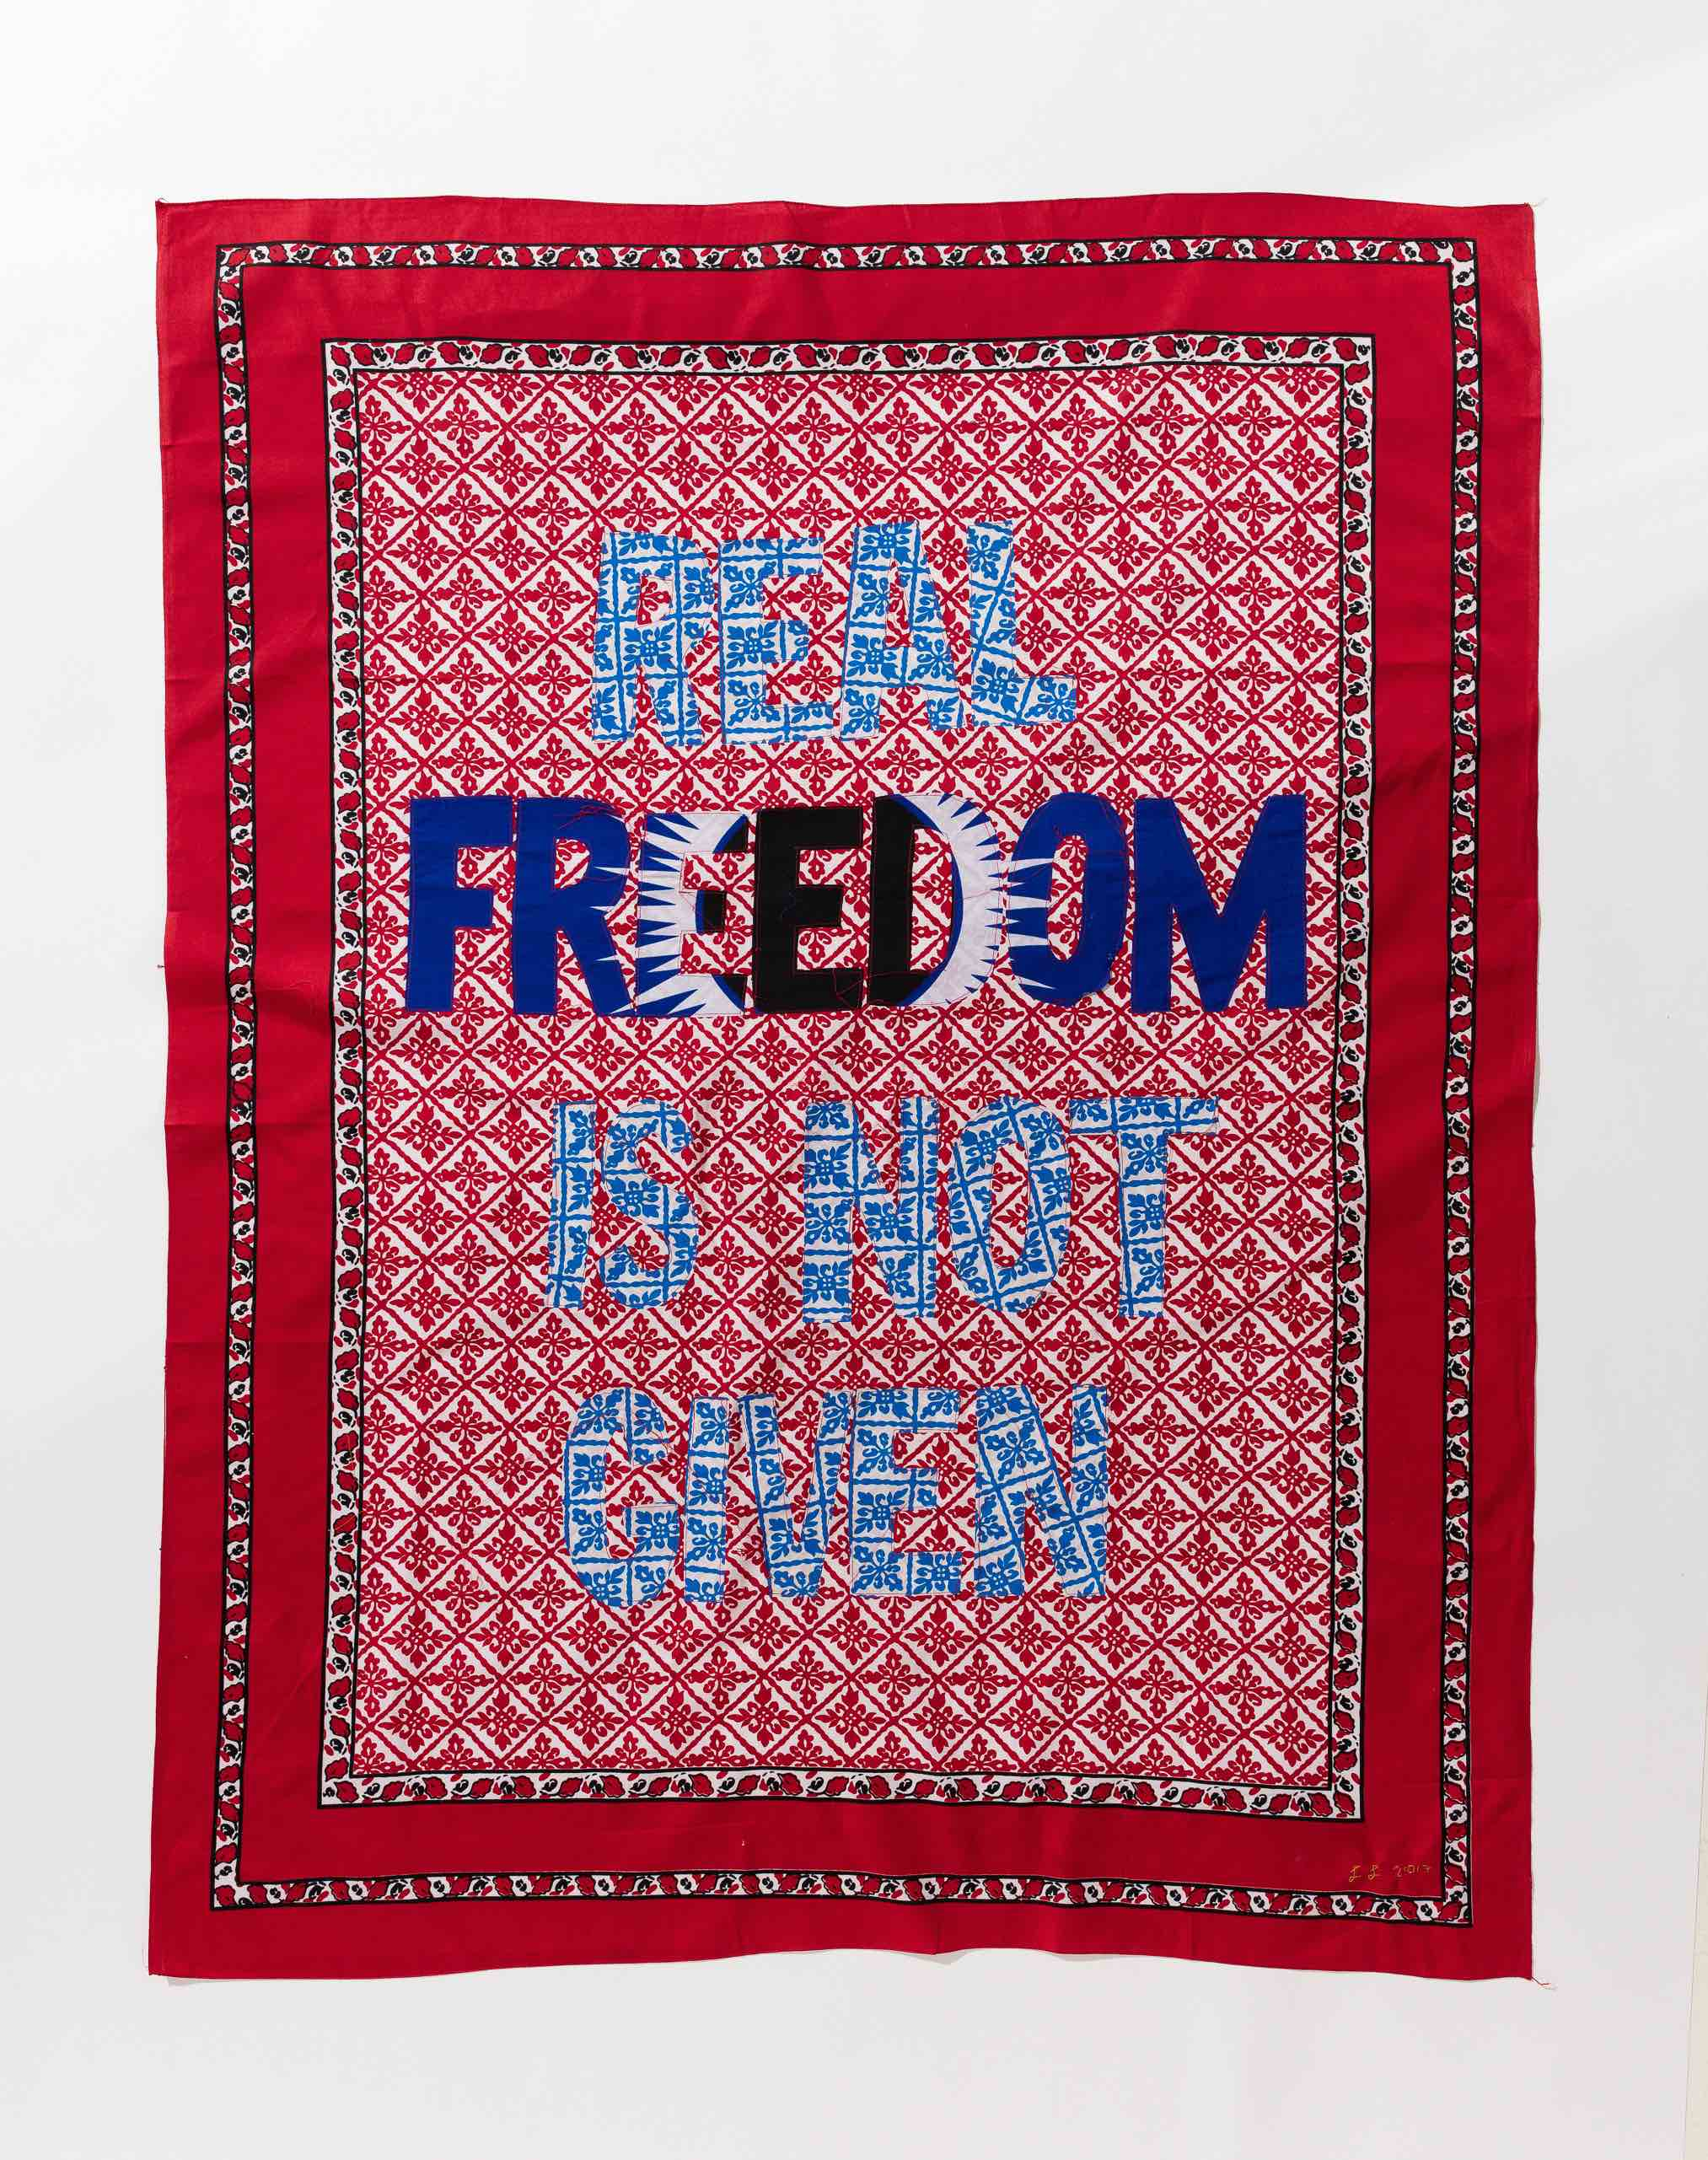 Lawrence Lemaoana, Real Freedom is not given, Khanga textile and cotton embroidery, 155xx115 cm, 2017-2